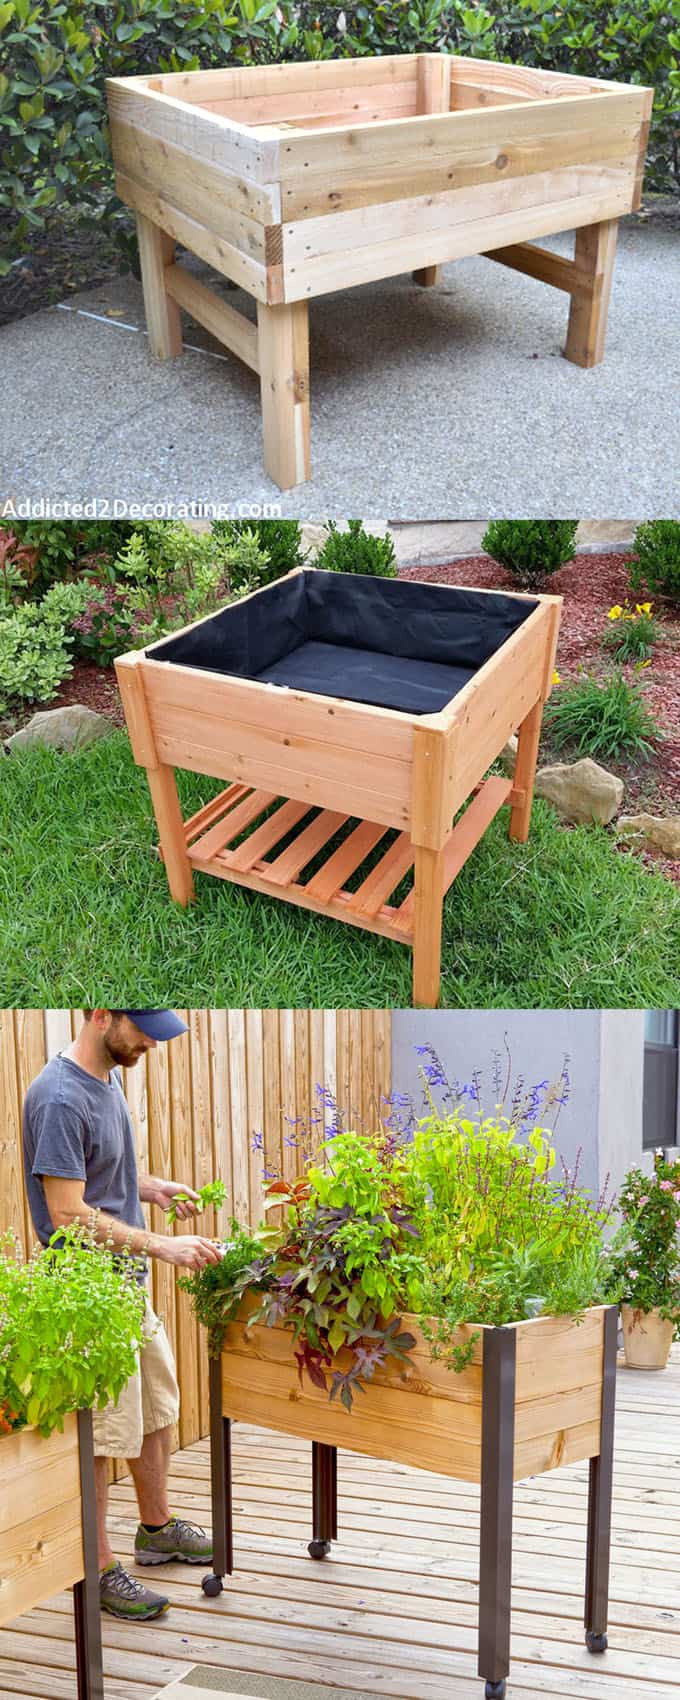 Raised Garden Boxes DIY  28 Amazing DIY Raised Bed Gardens A Piece Rainbow